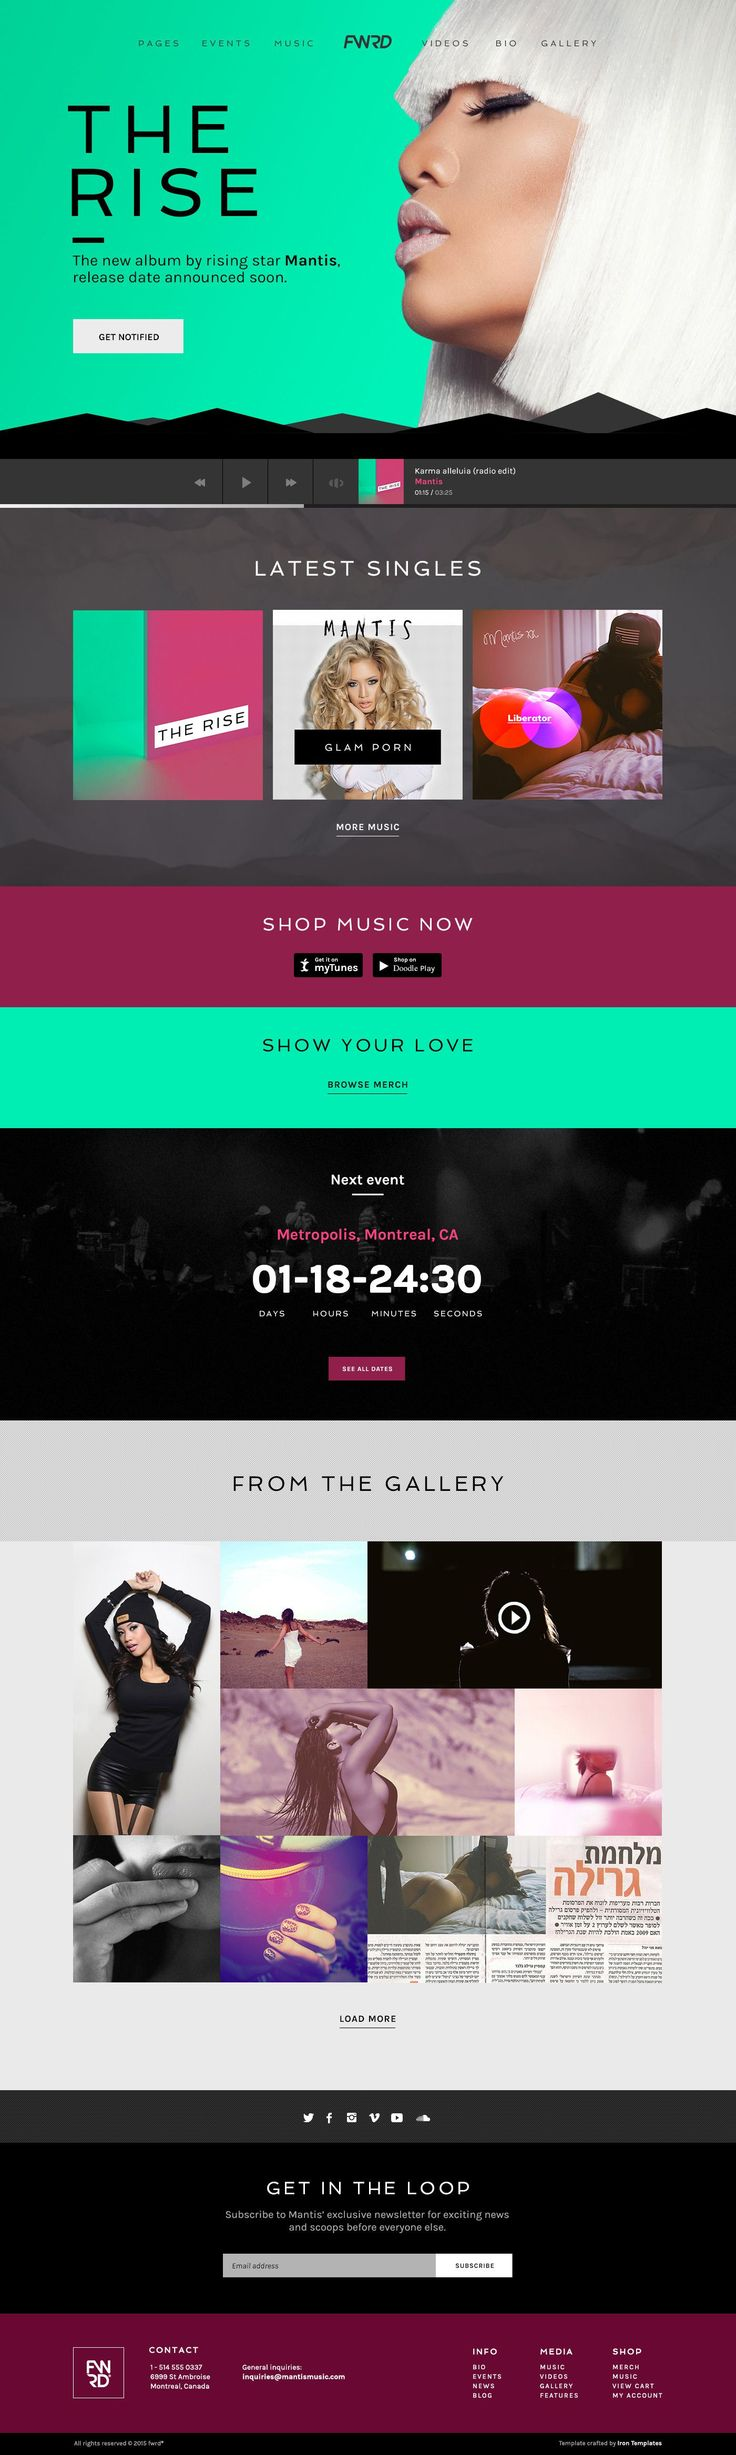 FWRD is the Ultimate Music Band & Musician #WordPress Theme. This template is perfect for #musician, dj, #music #producer or webmaster